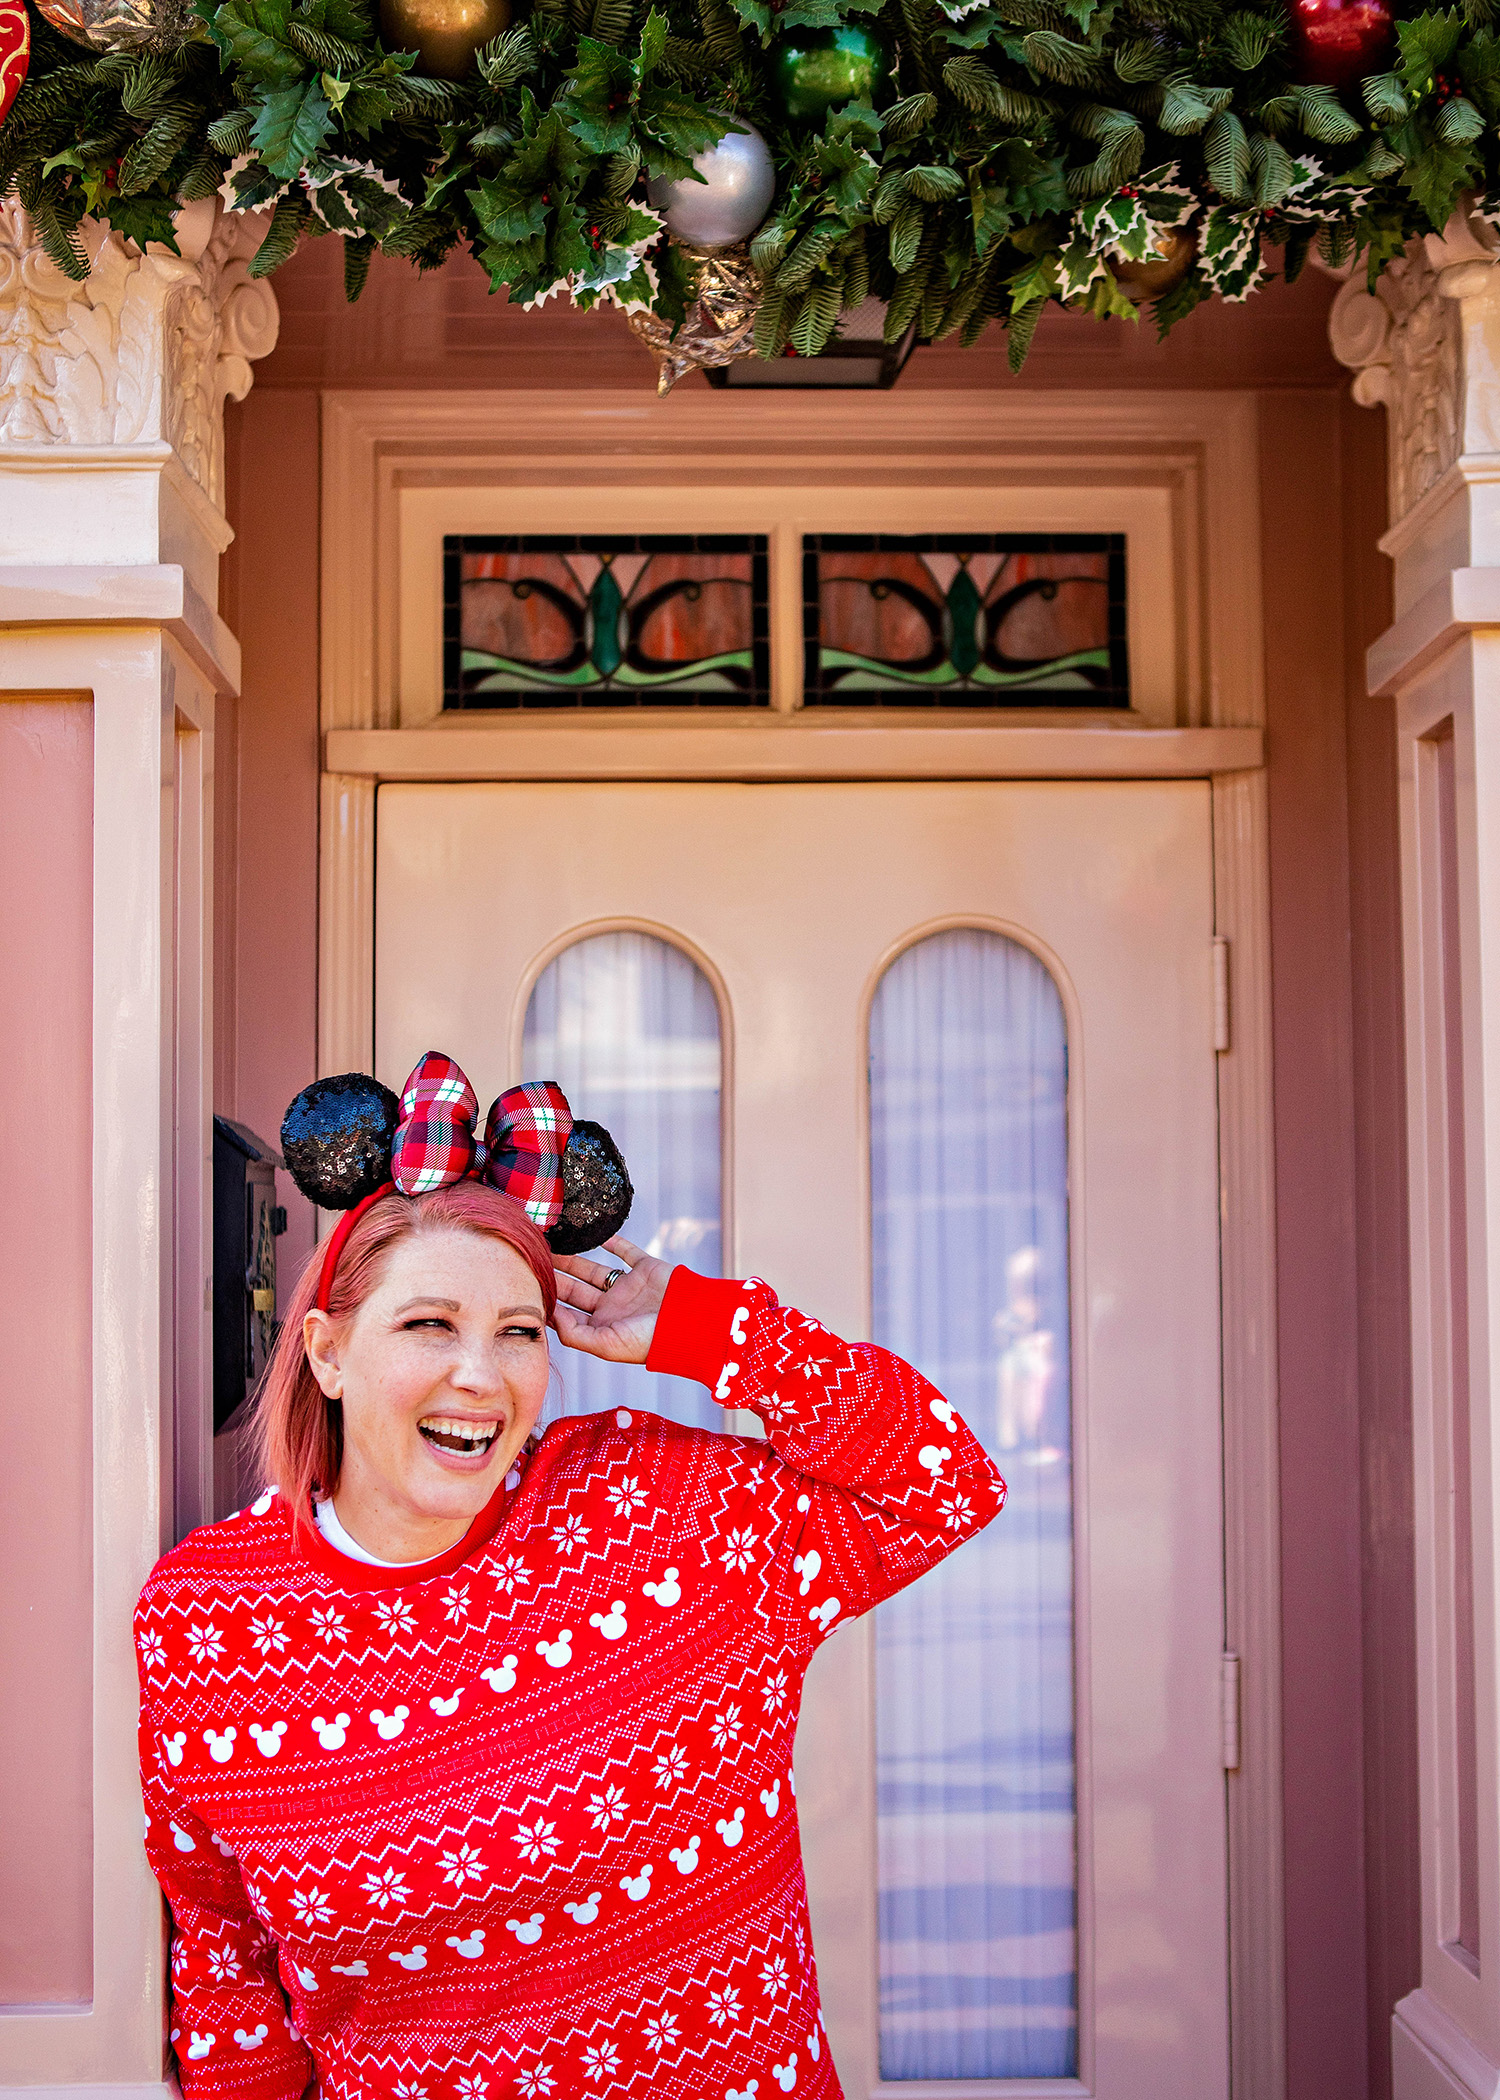 Looking for fun Disneyland outfits? This Mickey Christmas Sweater is PERFECT for Disneyland Christmas trips!